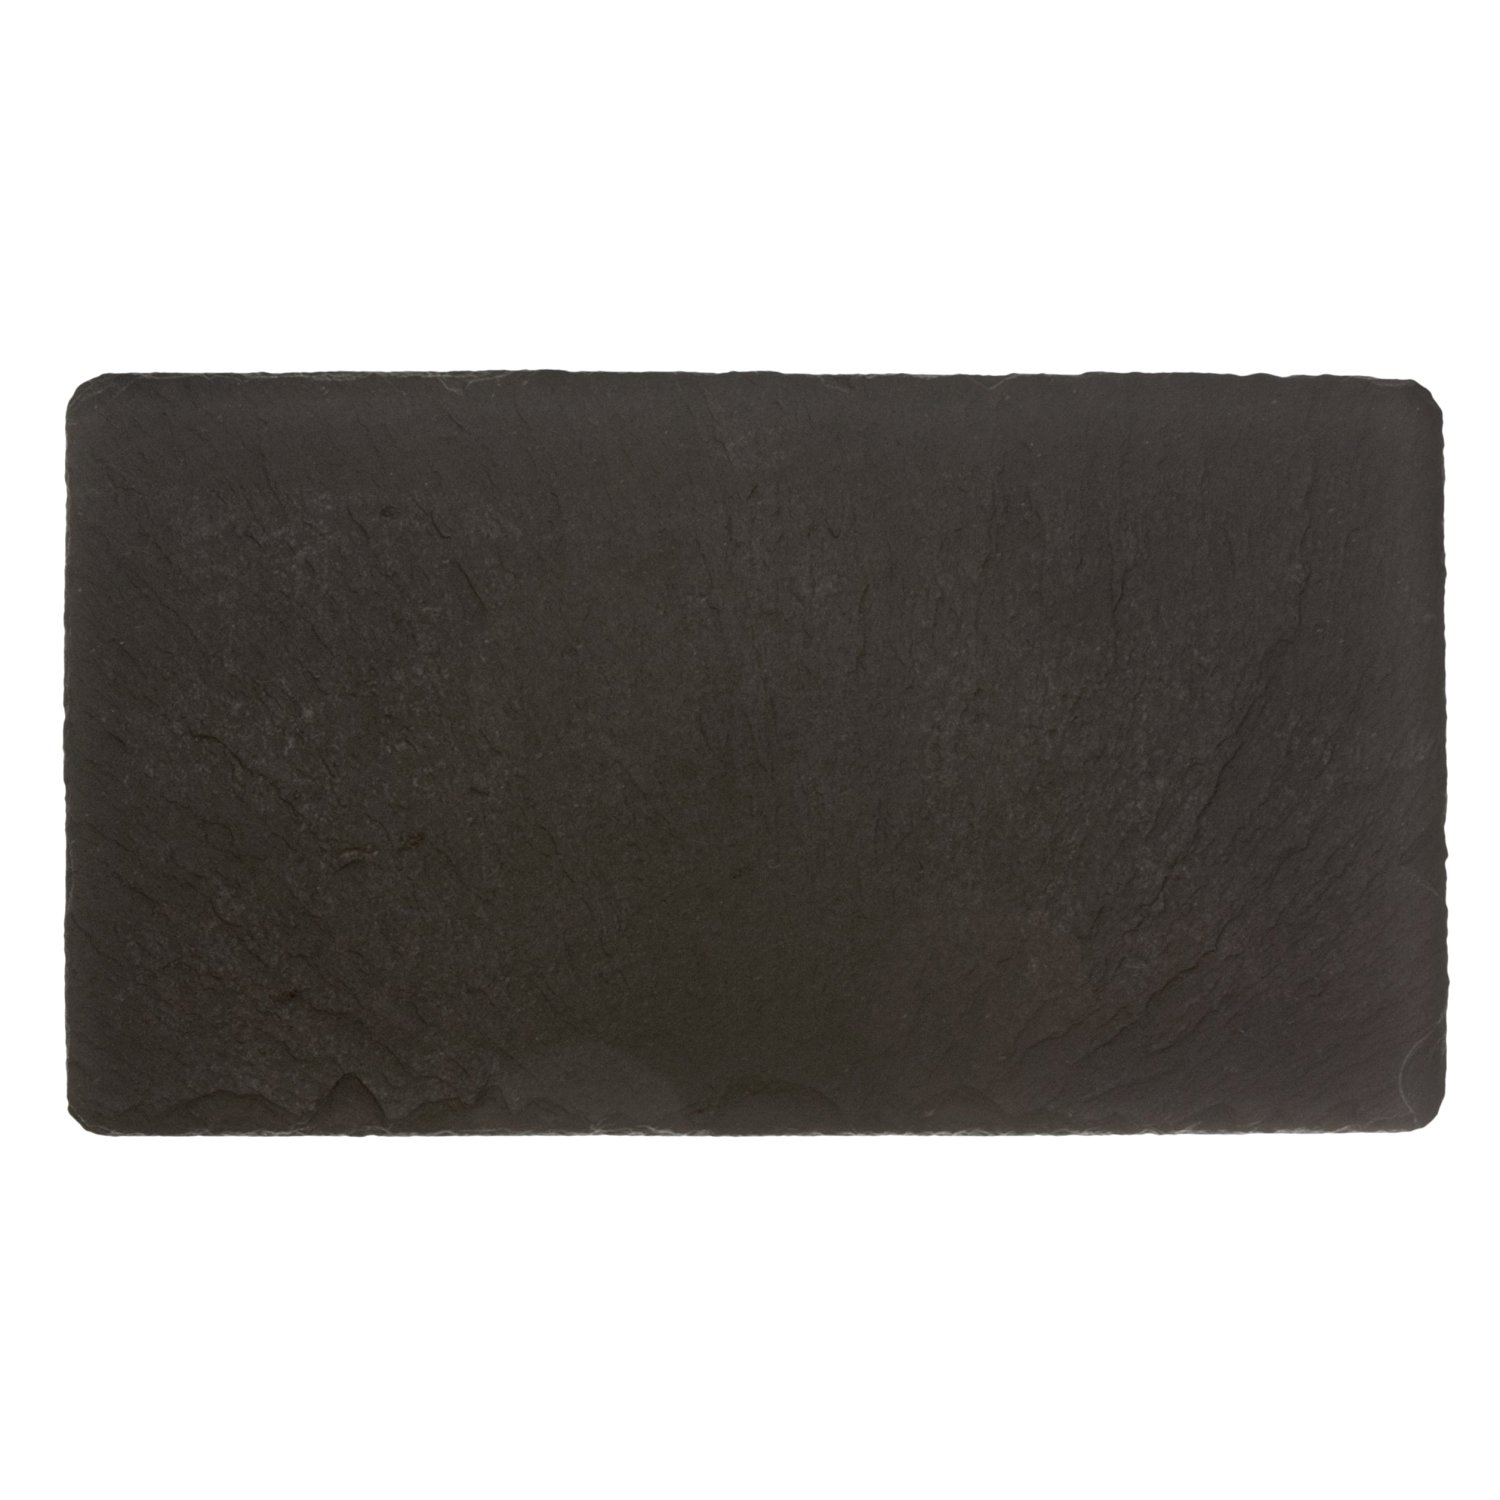 The Just Slate Company Natural Slate Table Runner, 19.5 x 9.75-Inch